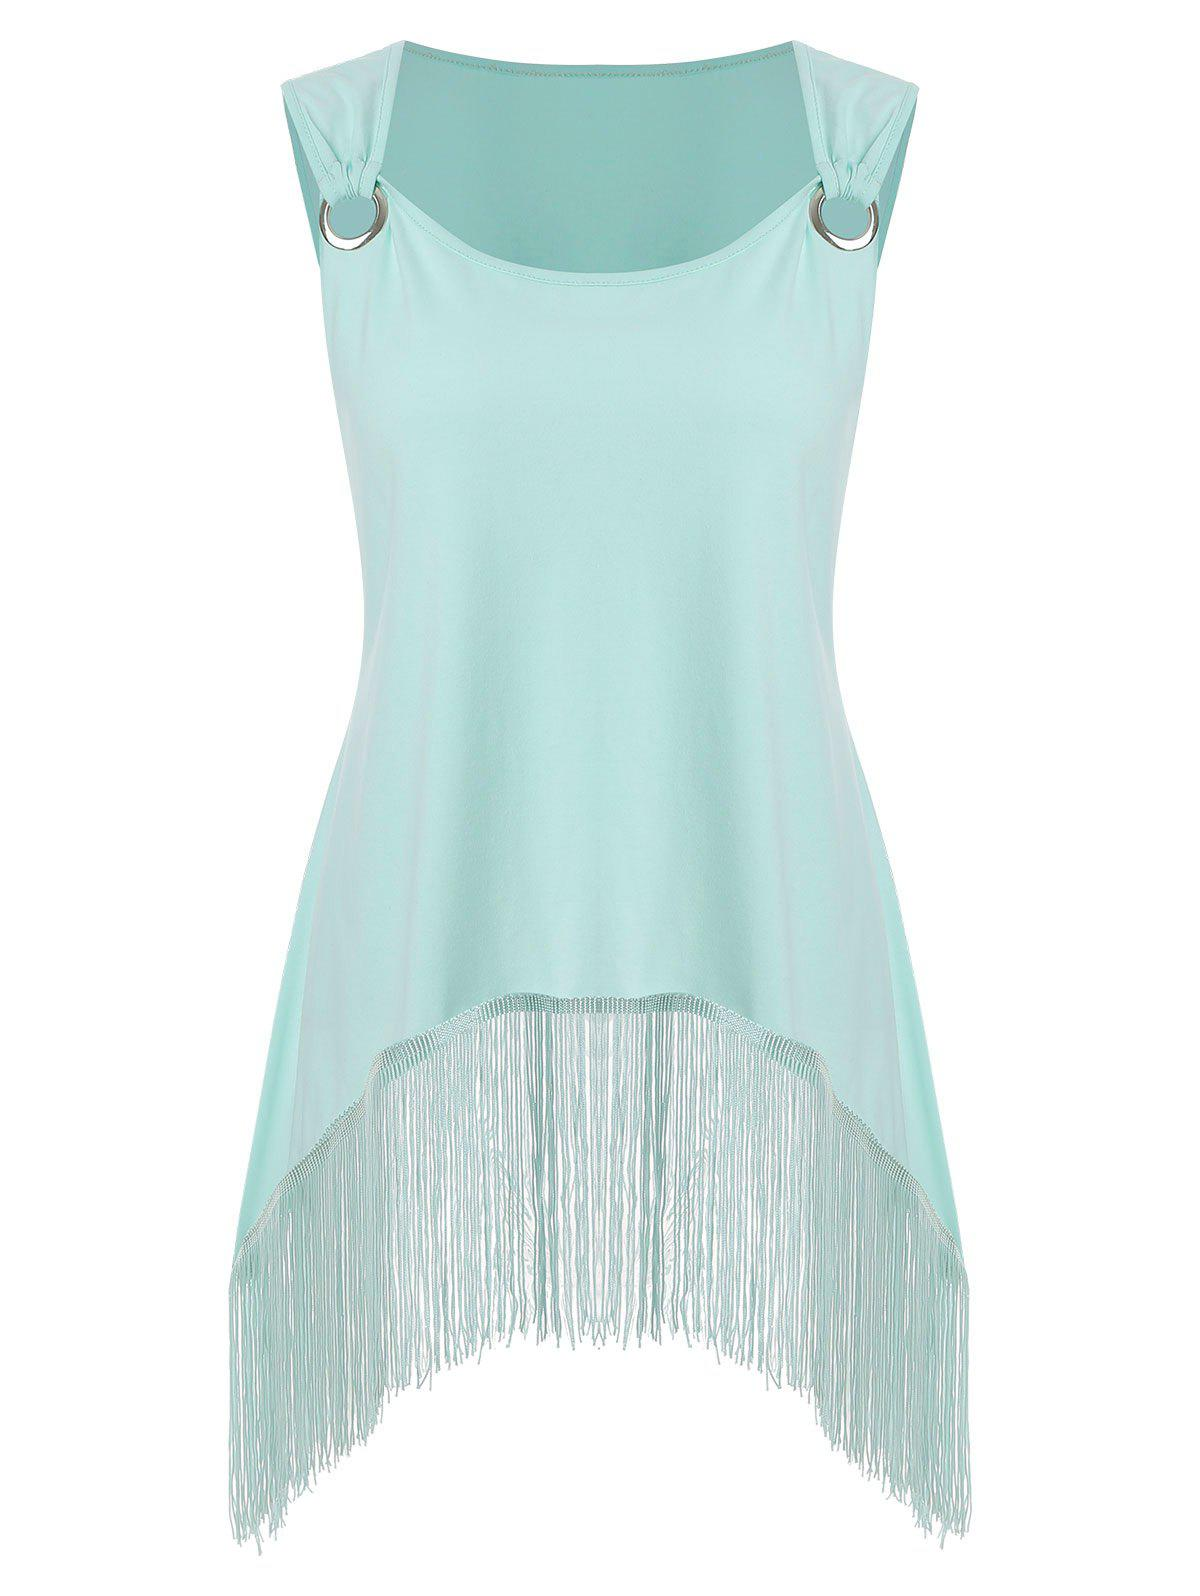 Fringes Metal Rings Plus Size Tank Top - PALE BLUE LILY 5X